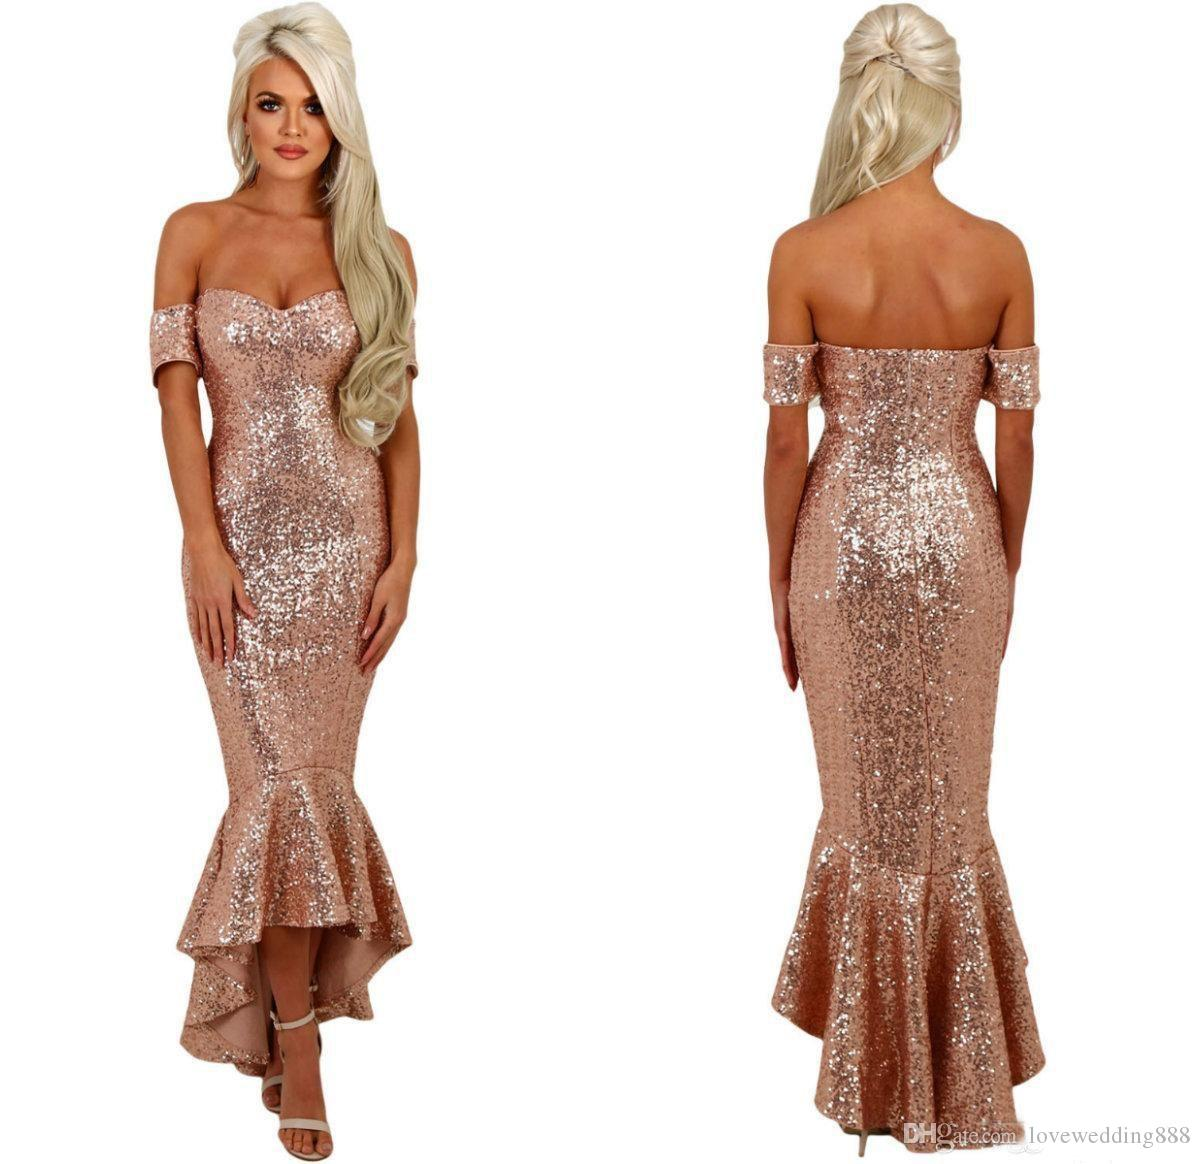 0d97df8c Rose Gold Sequins Mermaid Prom Dresses High Low Sparkly Sexy Off Shoulder  Ruffle Cheap Party Evening Gown 2018 Aqua Prom Dresses Best Prom Dresses  2015 From ...